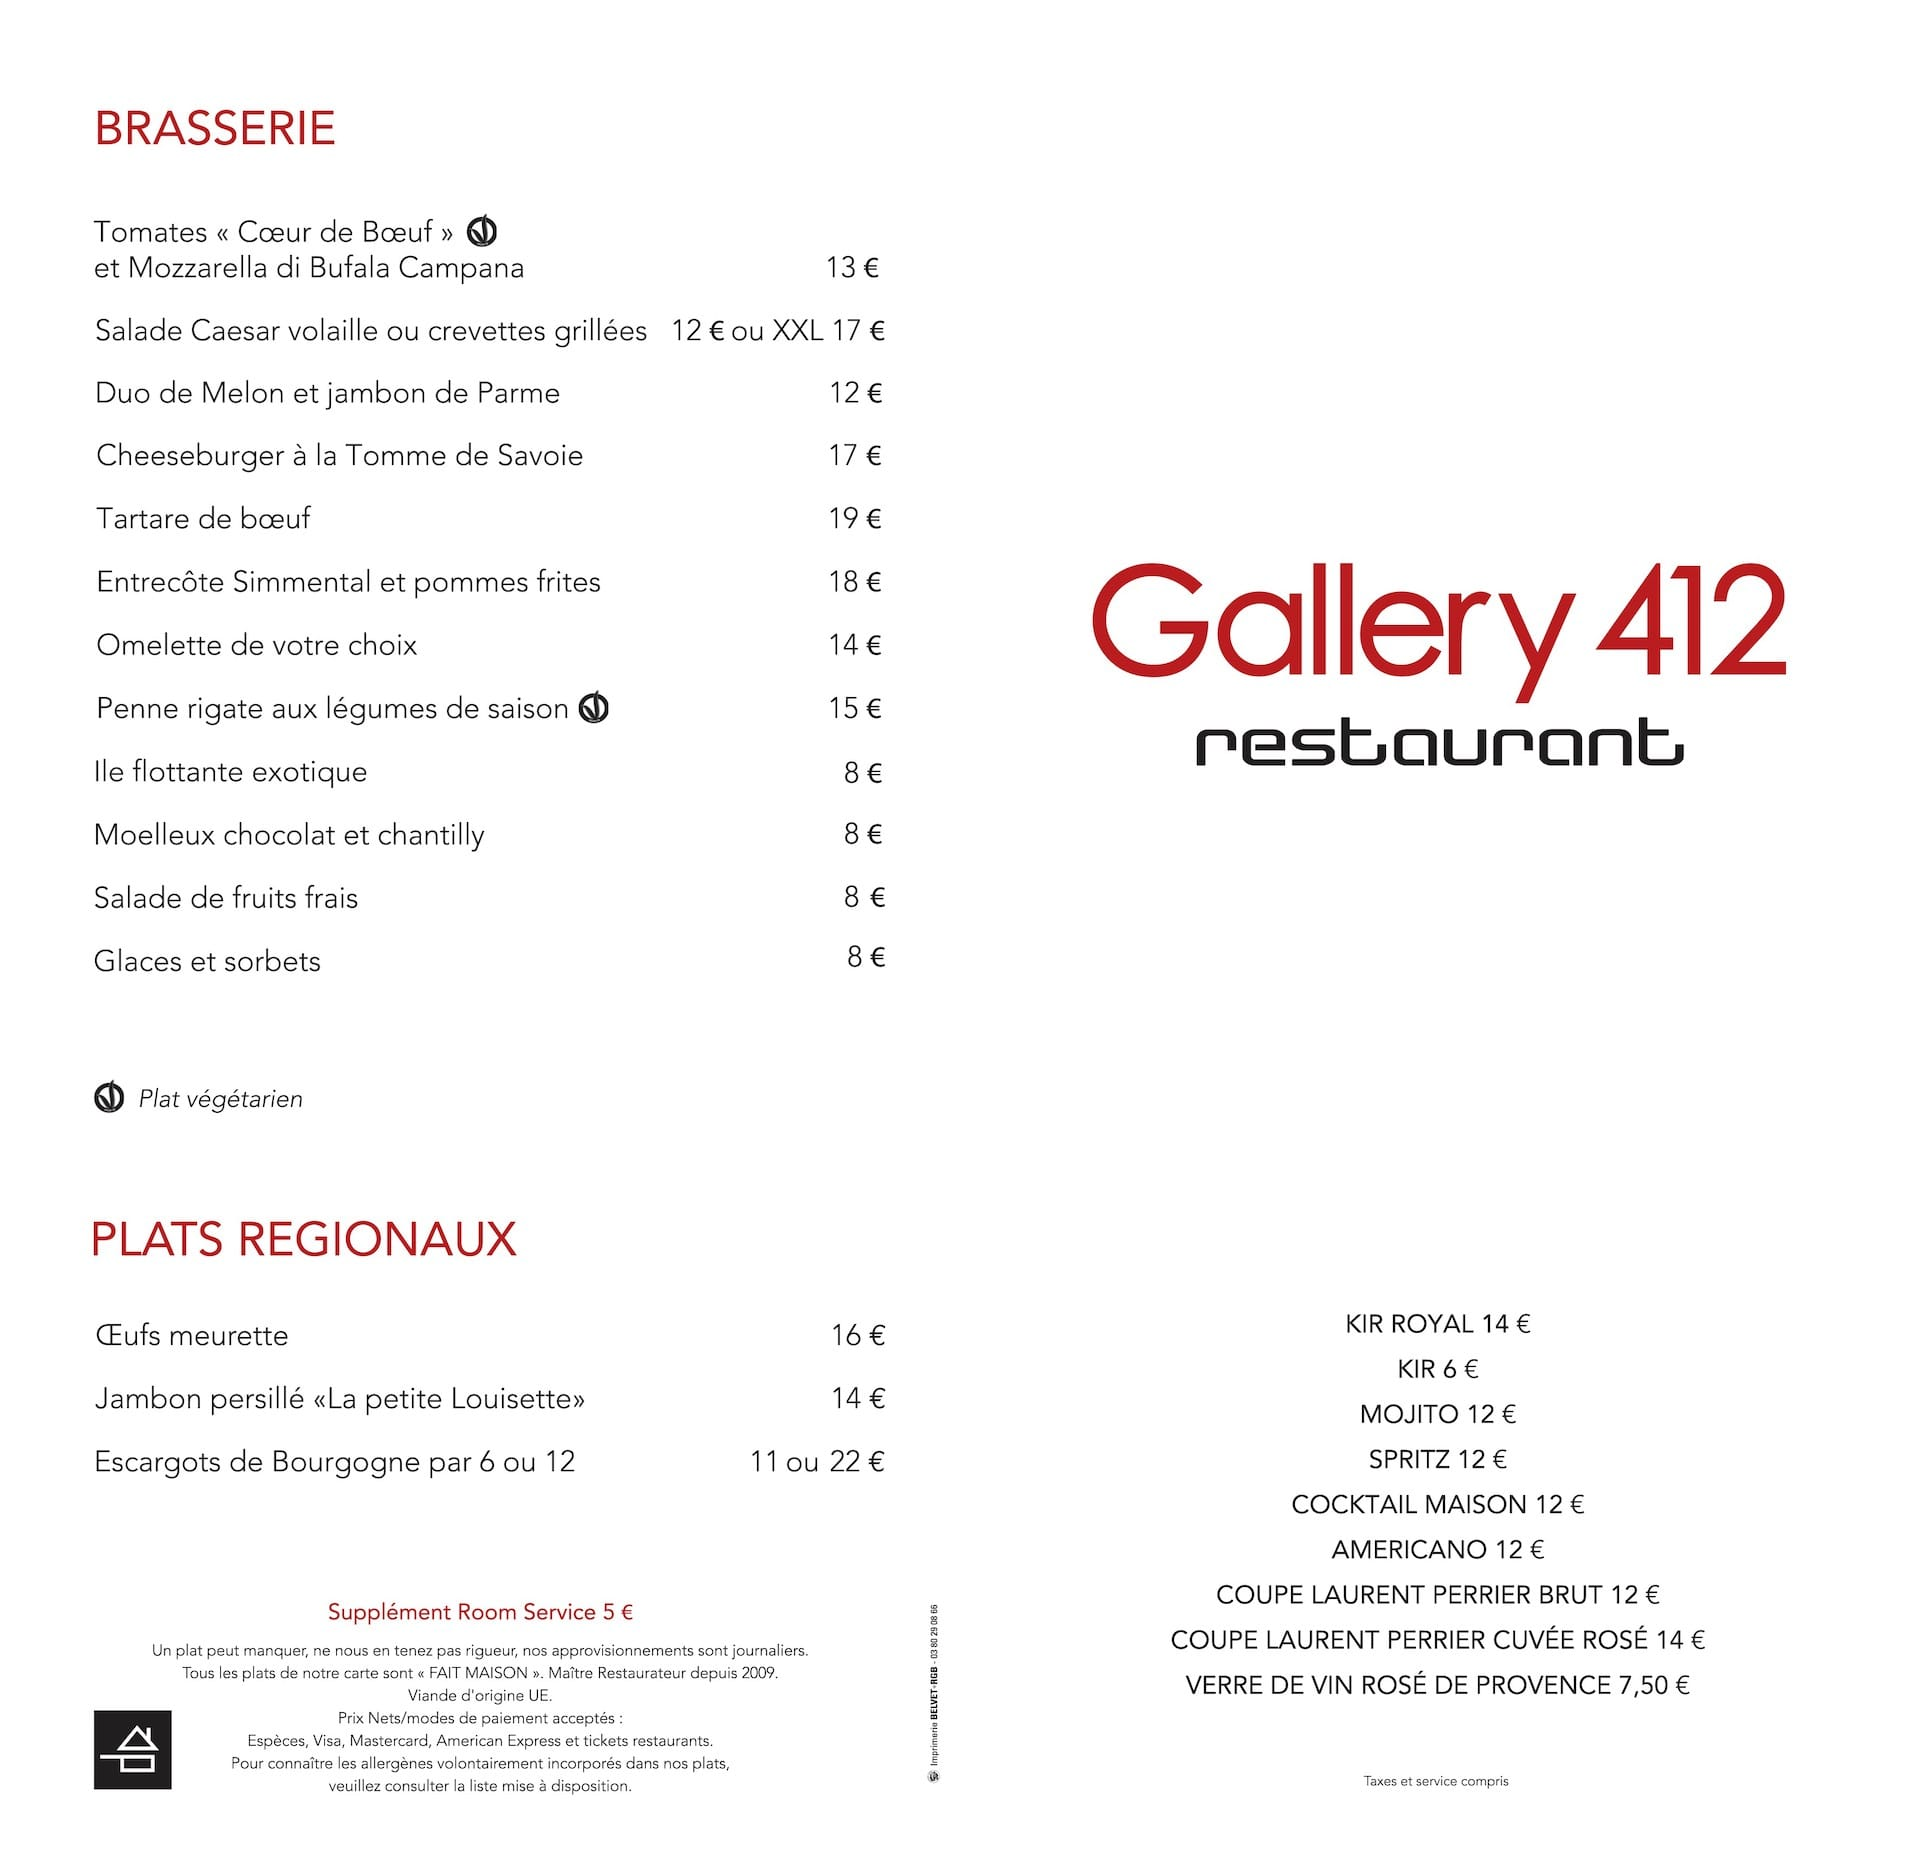 Menu du restaurant Gallery 412